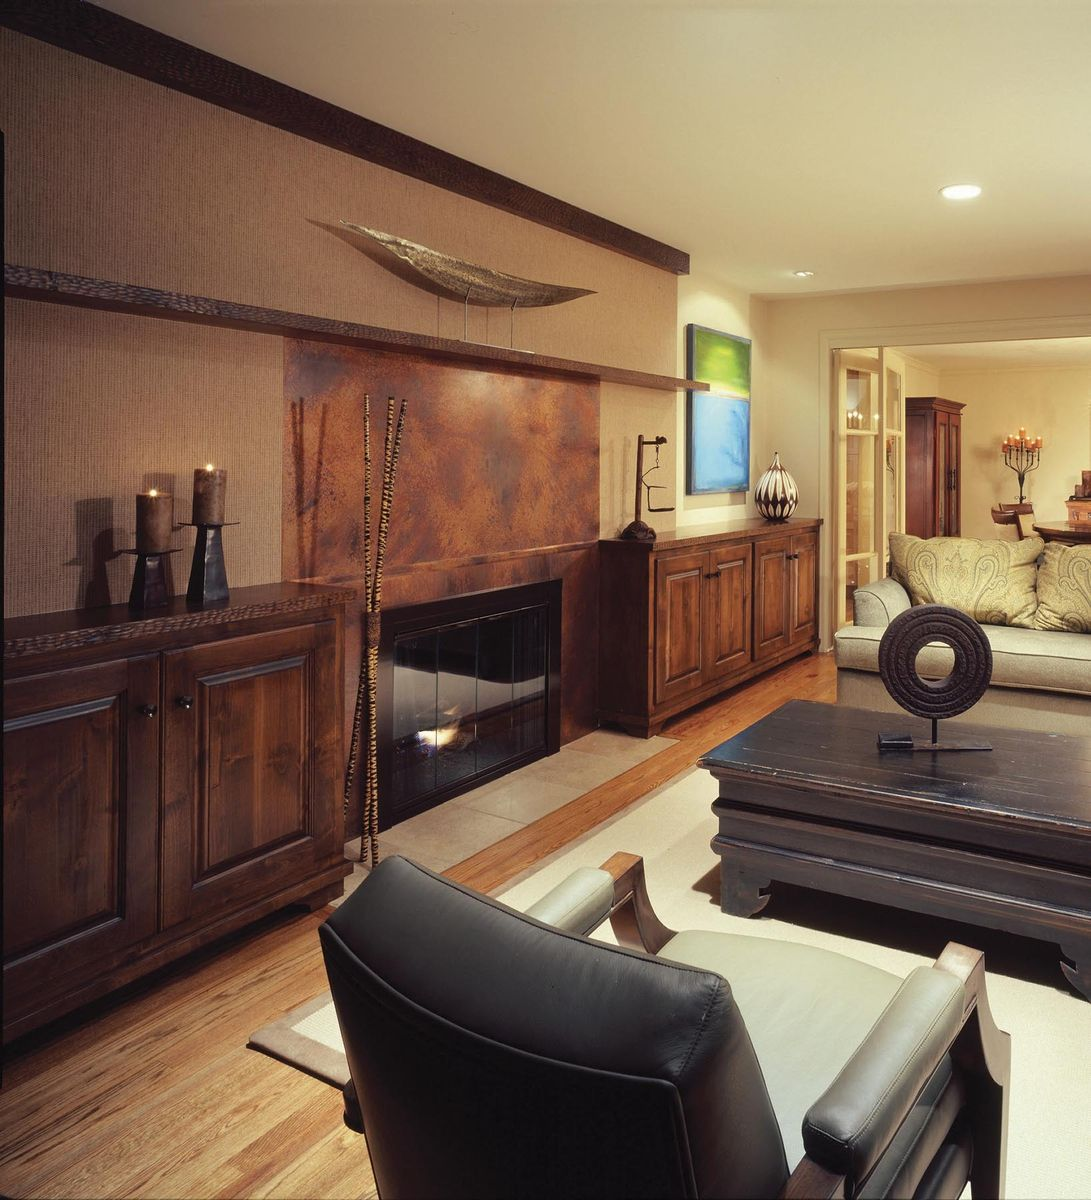 Custom Made Cabinets Hand Crafted Built In Cabinets Living Room By Tilde